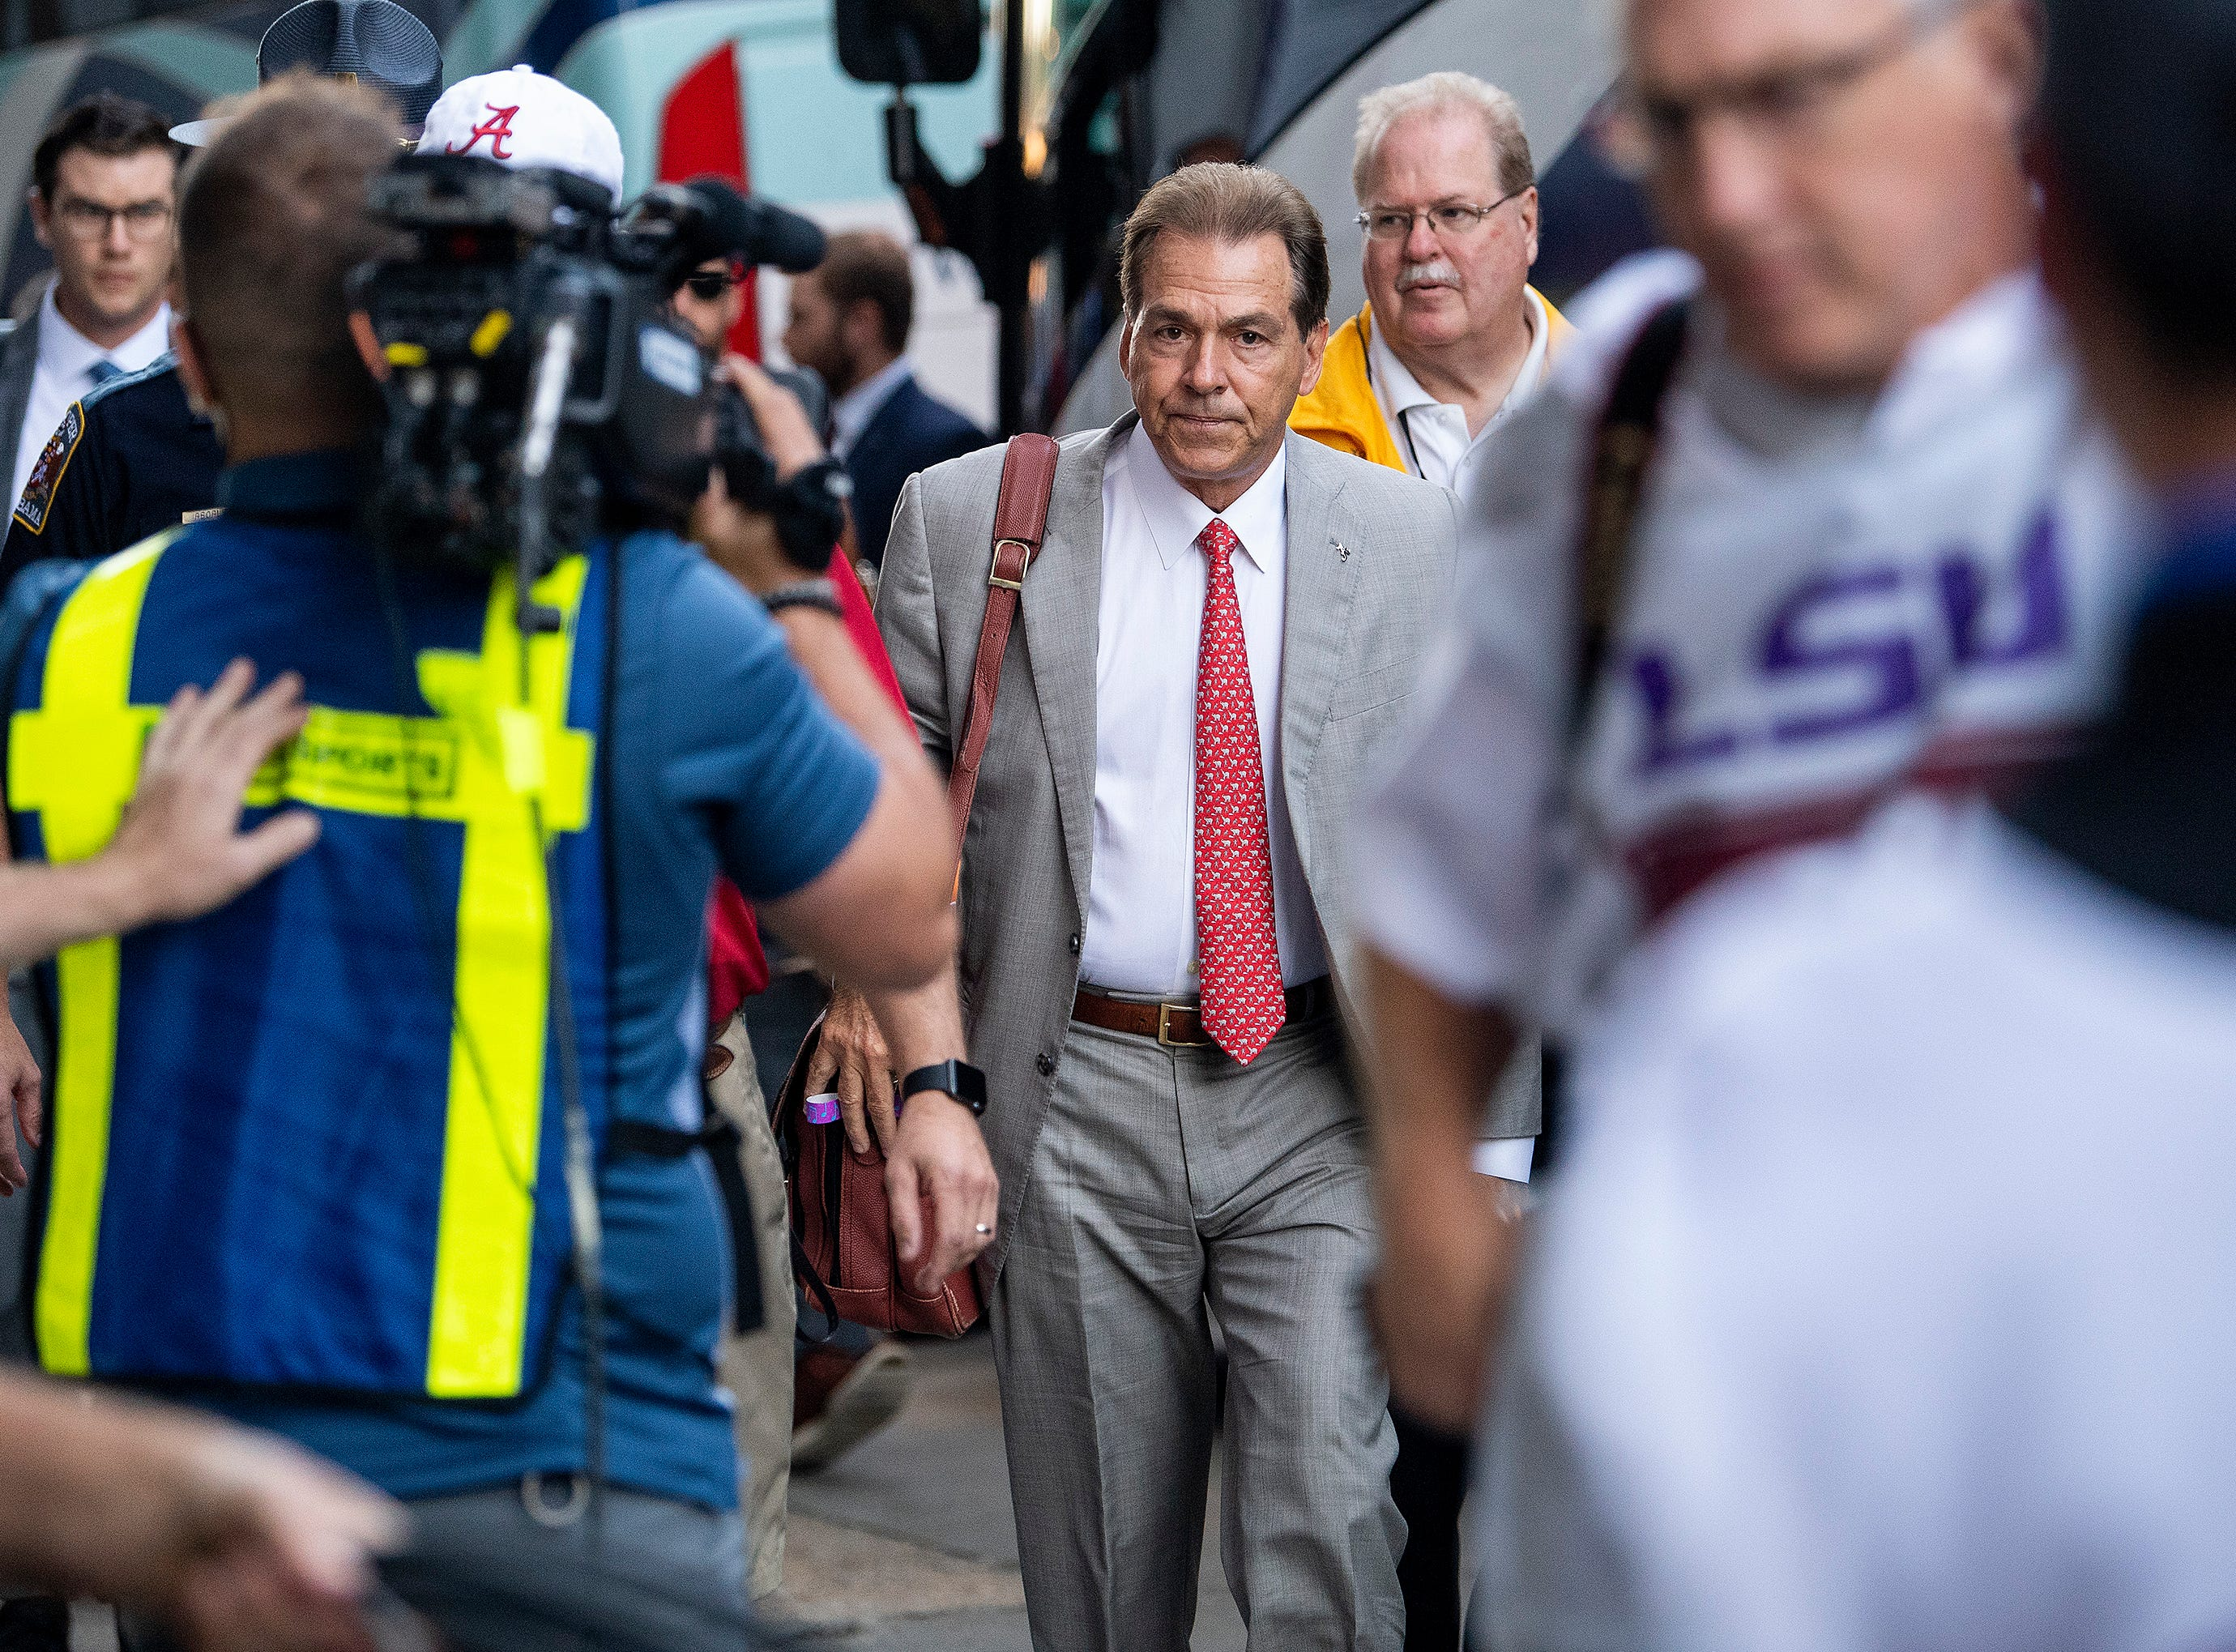 Alabama head coach Nick Saban arrives with the team before the Alabama vs. Louisiana State football game at Tiger Stadium in Baton Rouge, La., on Saturday November 3, 2018.